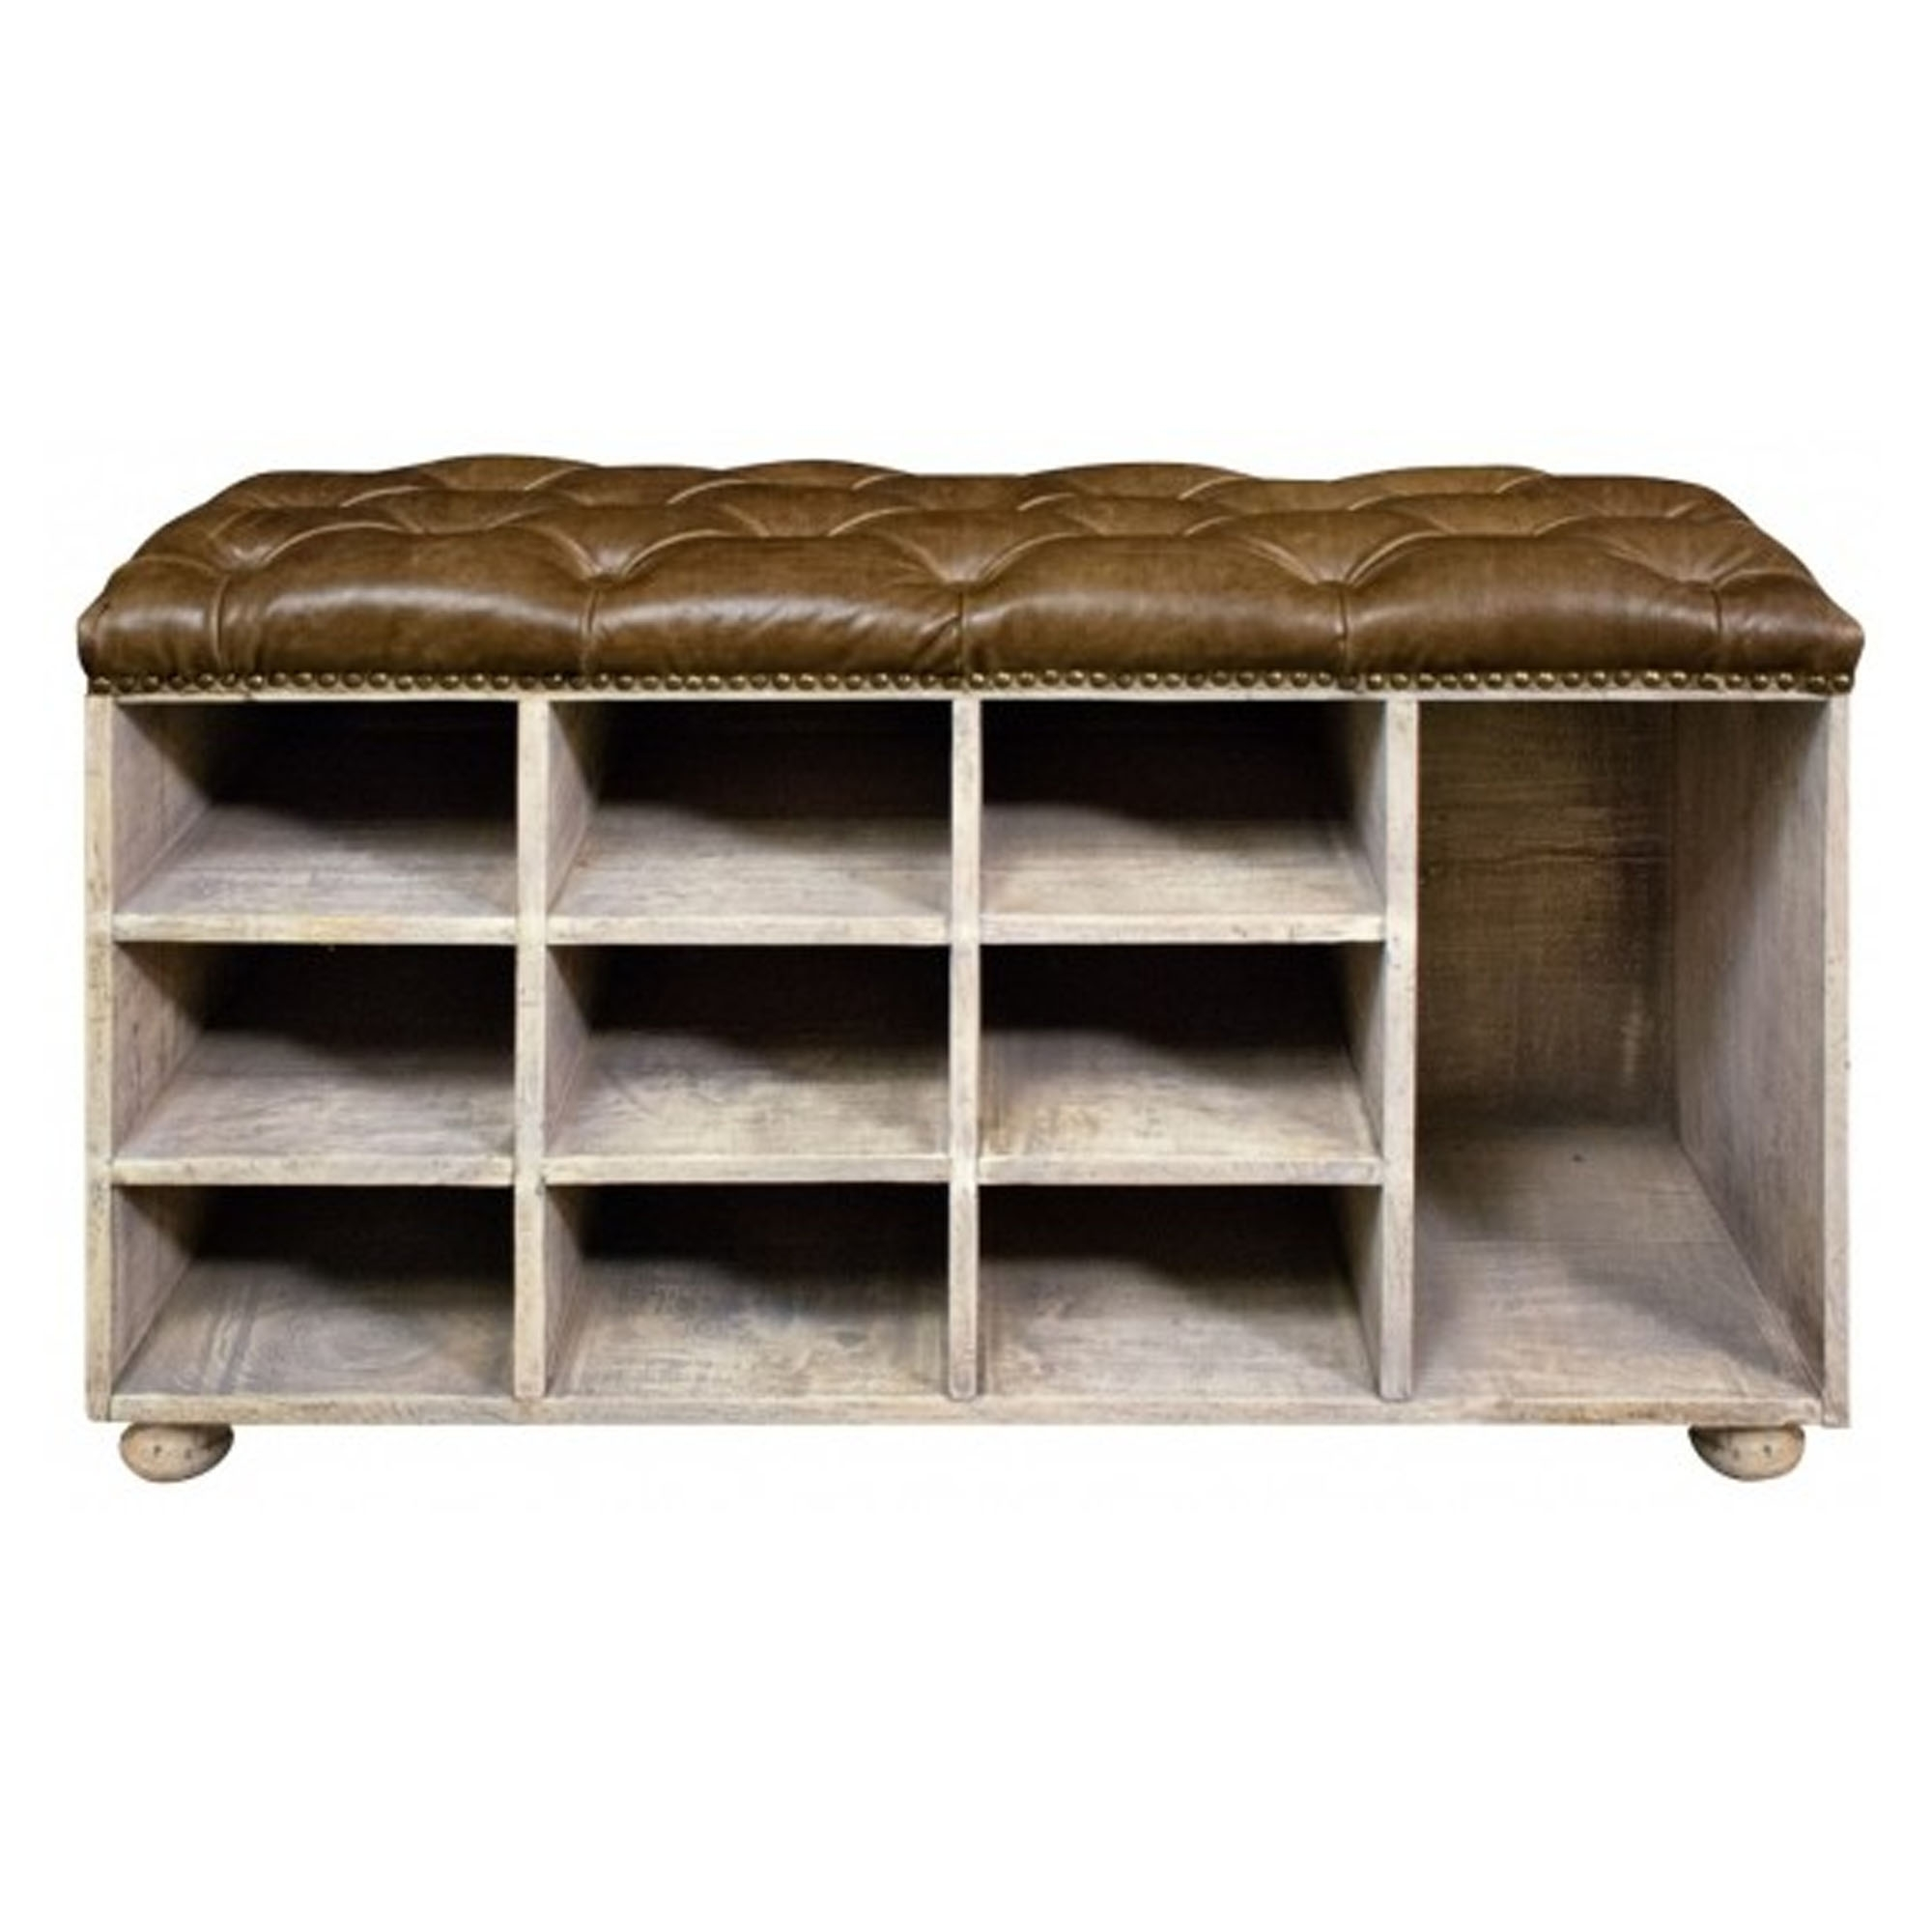 Shoe Bench With Buffalo Hide Seat Shoe Storage Benches